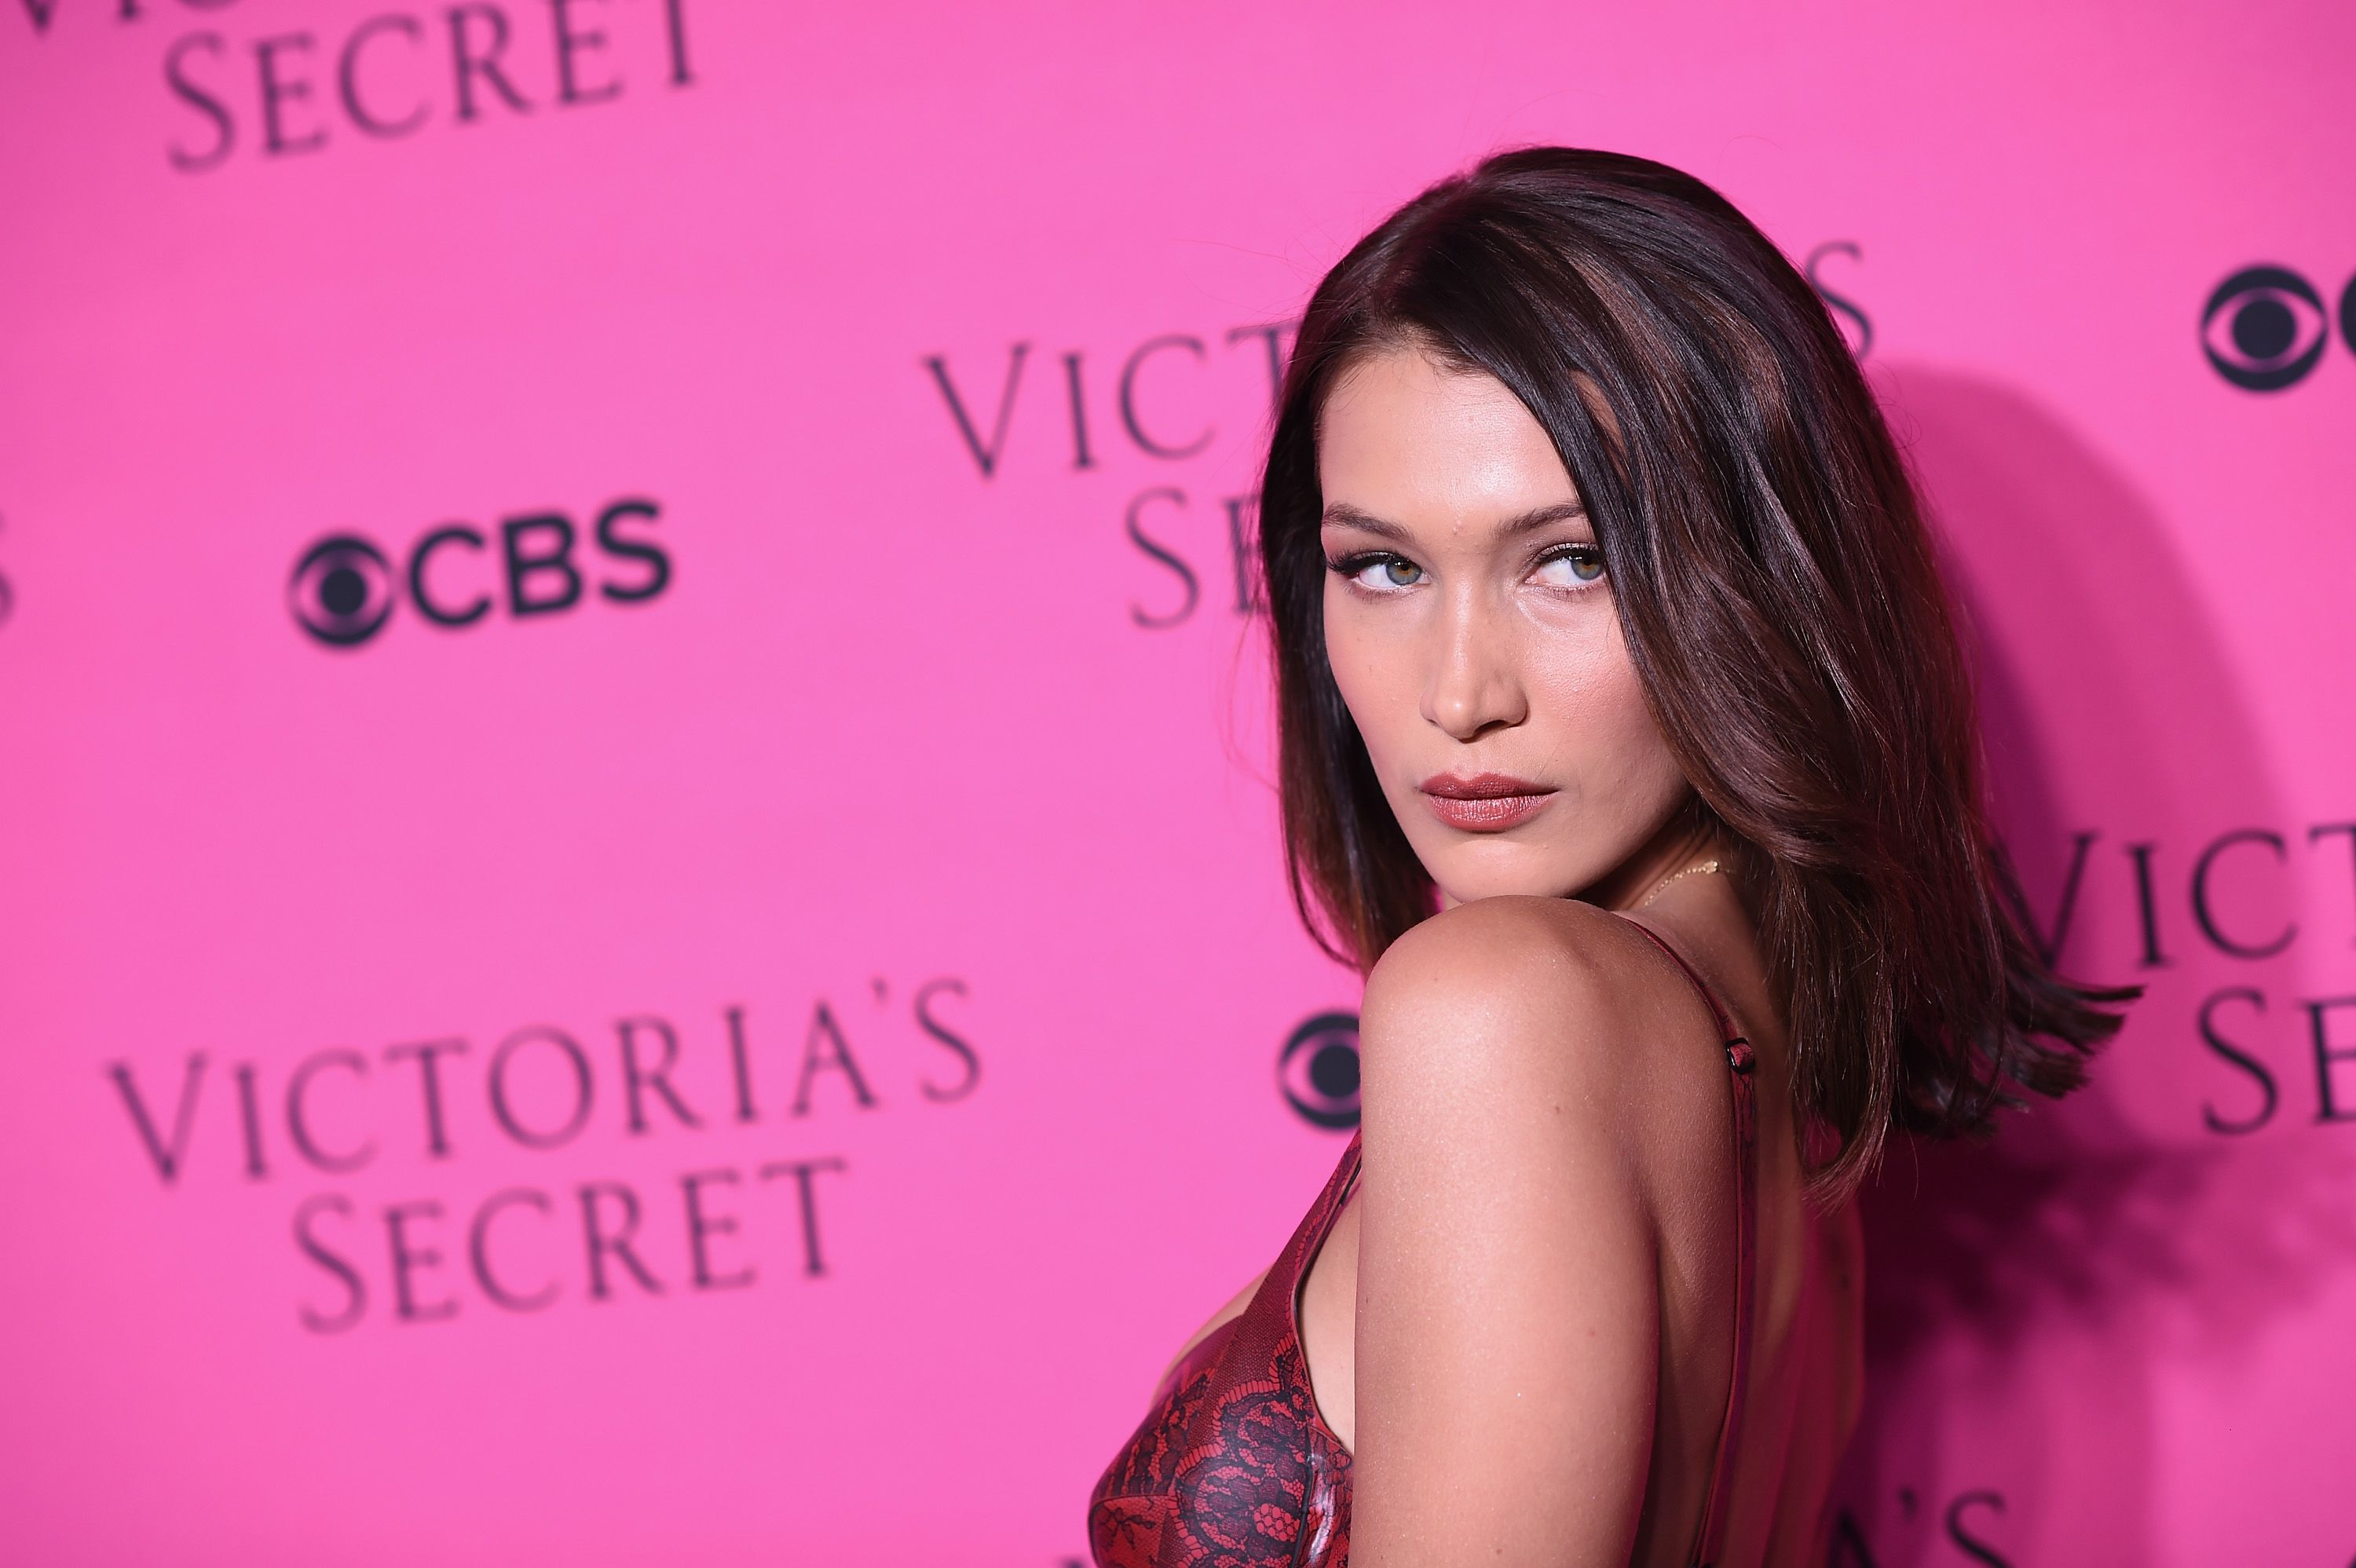 Bella Hadid at the Victoria's Secret Angels intimate viewing party of the 2017 Victoria's Secret Fashion Show at Spring Studios on November 28, 2017 in New York City. | Source: Getty Images